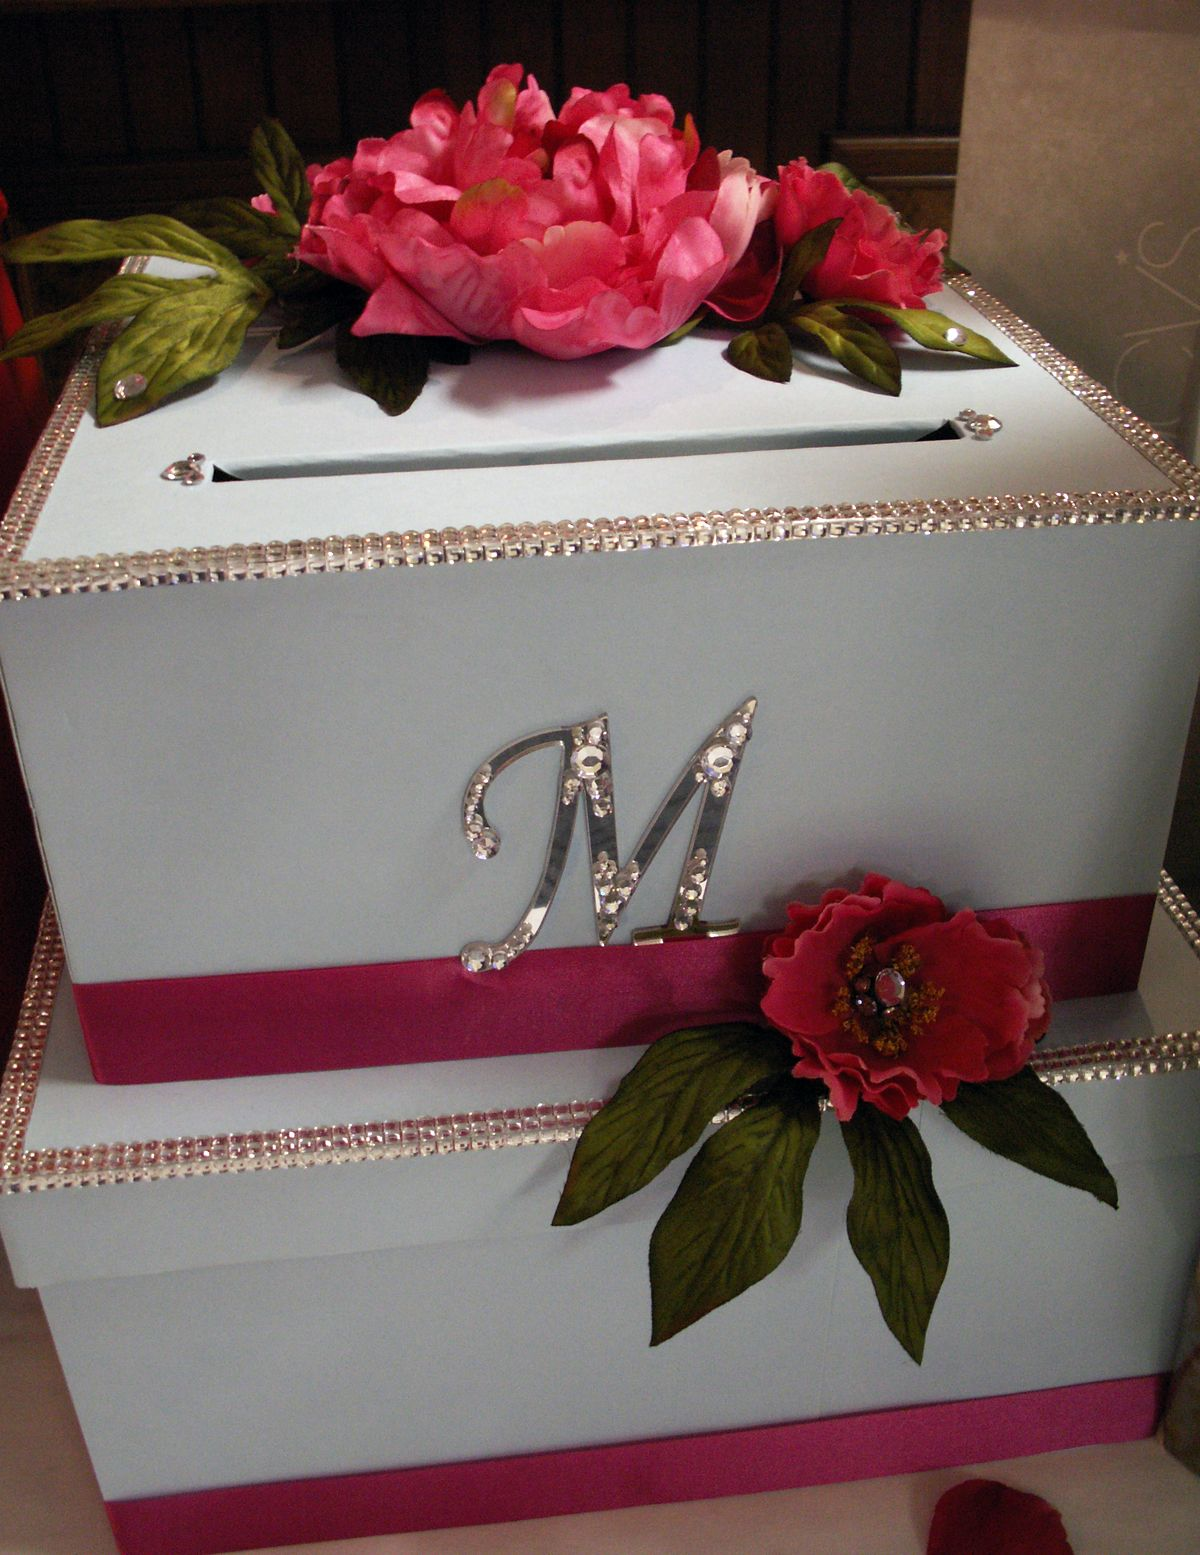 DIY Wedding Card Box Tutorial craftsunleashed – Wedding Box for Cards